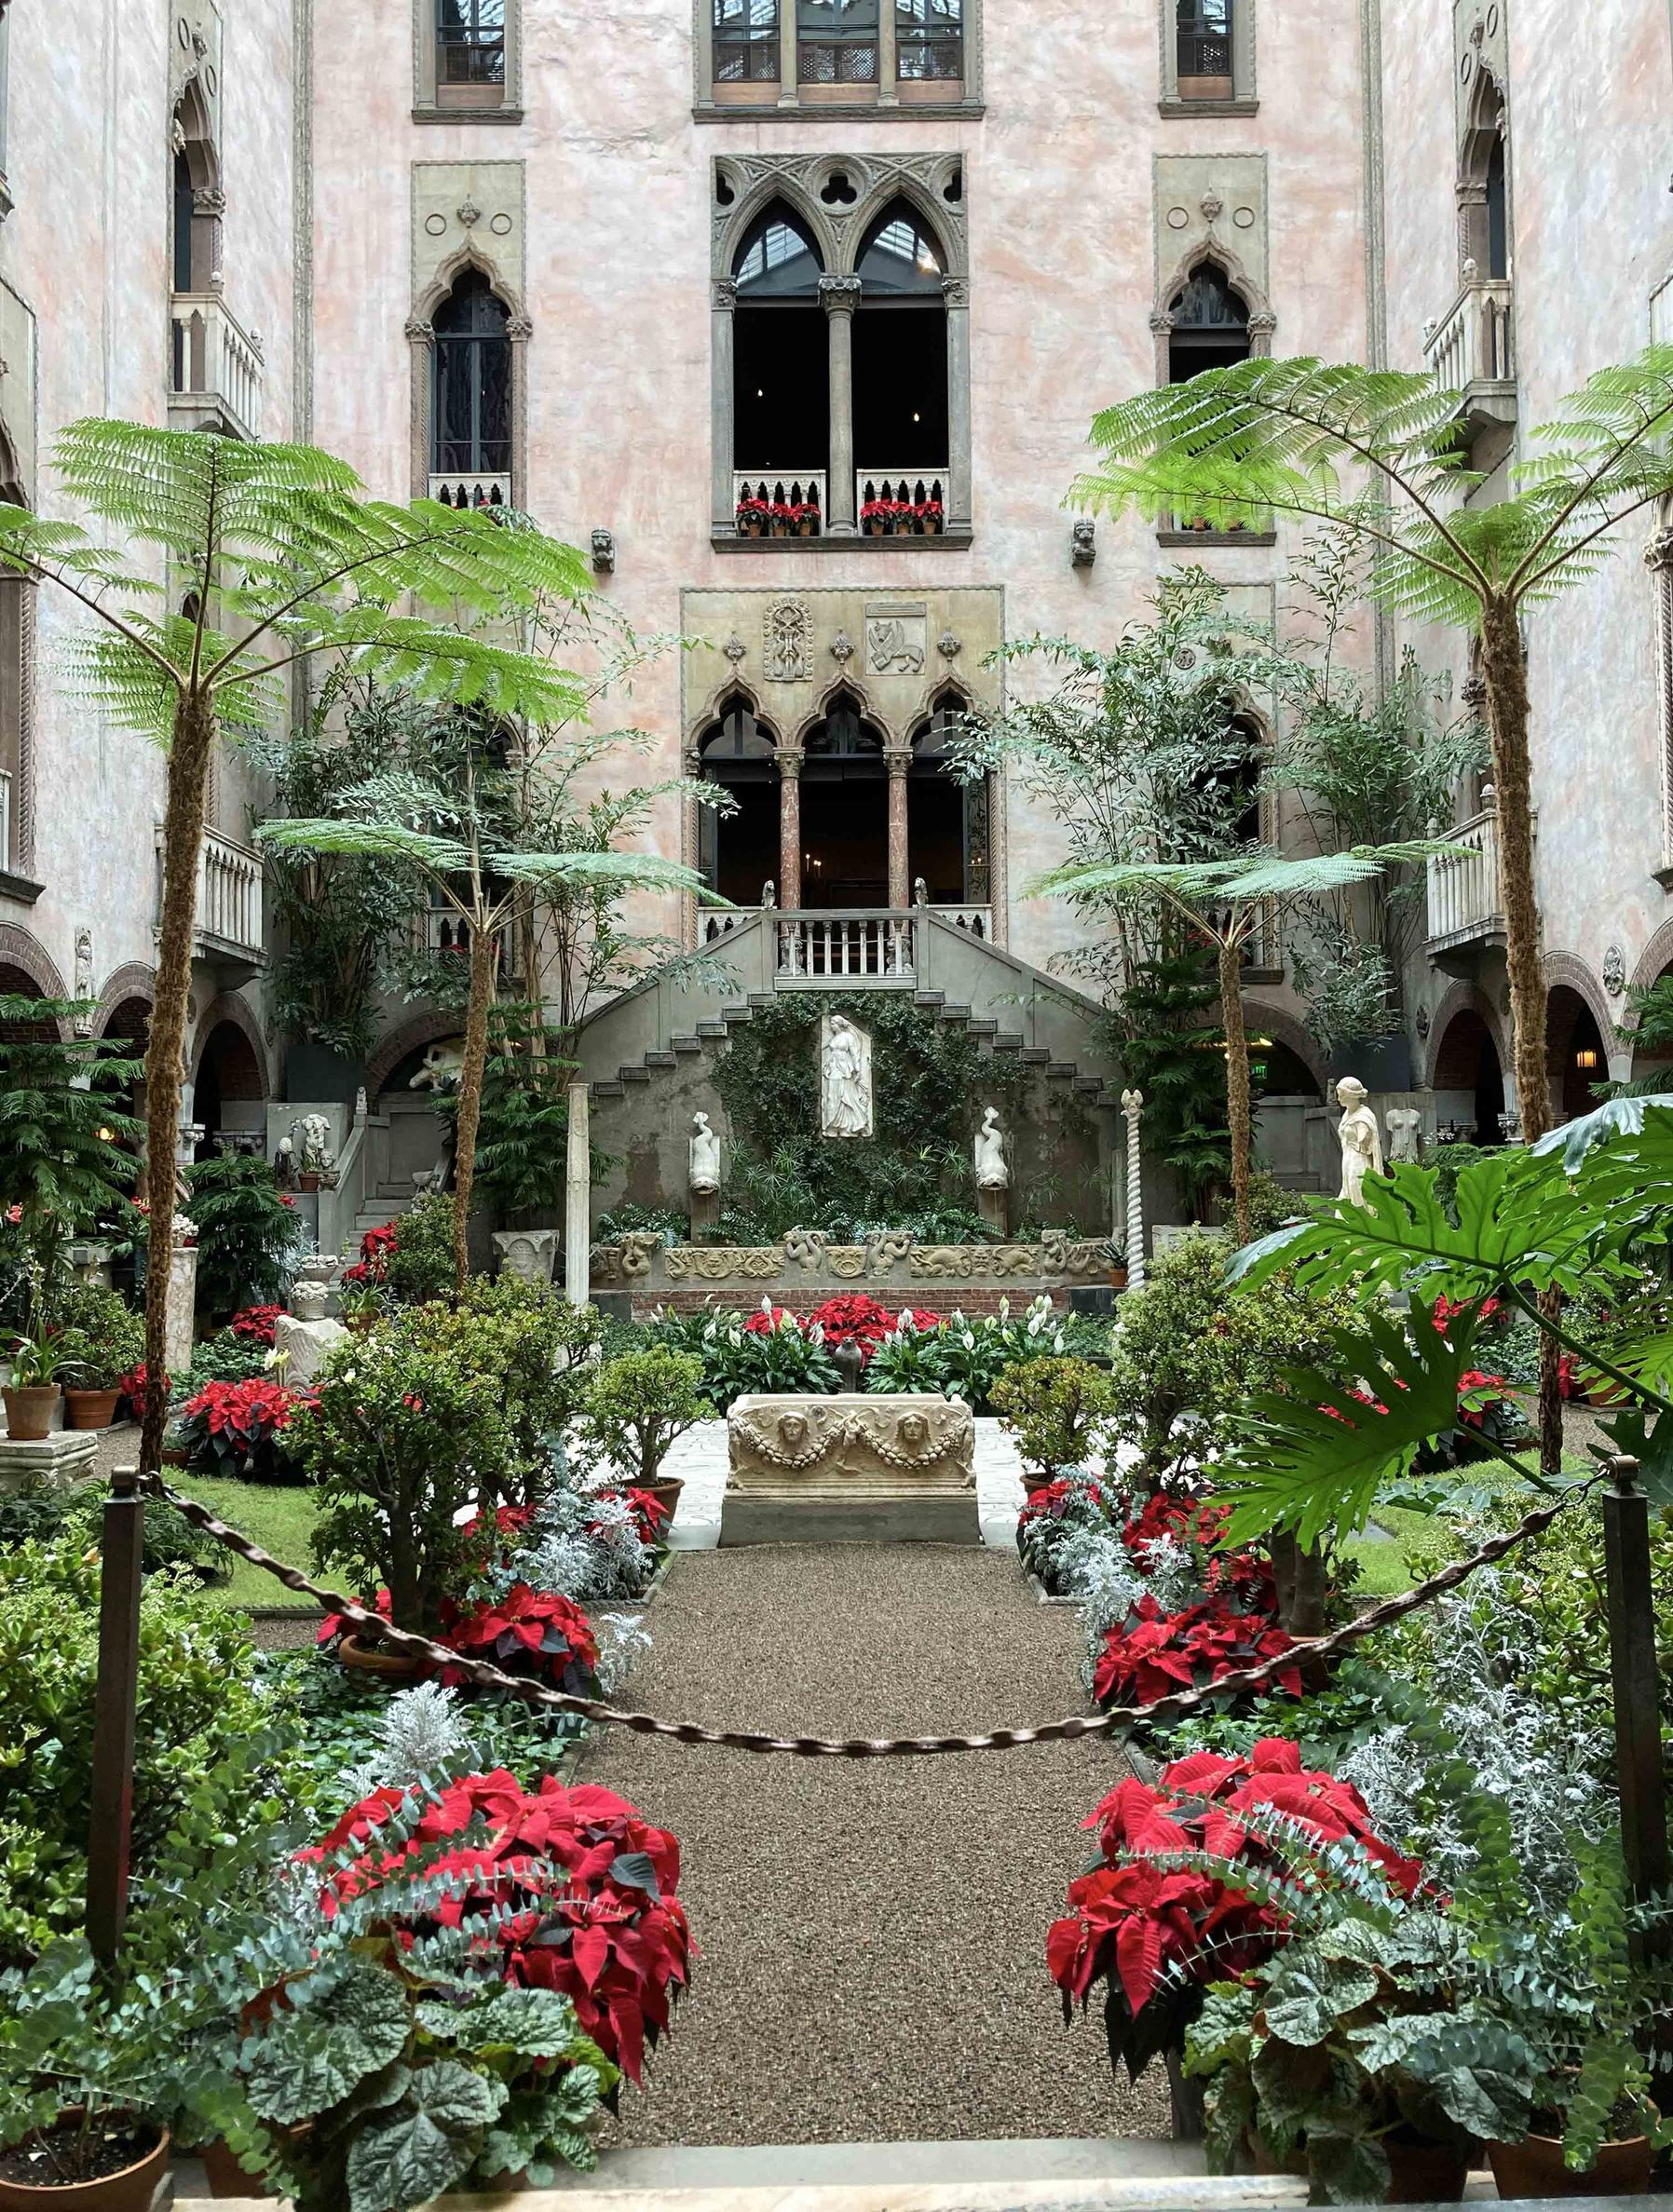 The festive Courtyard in December features flowering jade, juniper and poinsettia. Crimson, velvet amaryllis emerge from nests of fir, pine and magnolia.